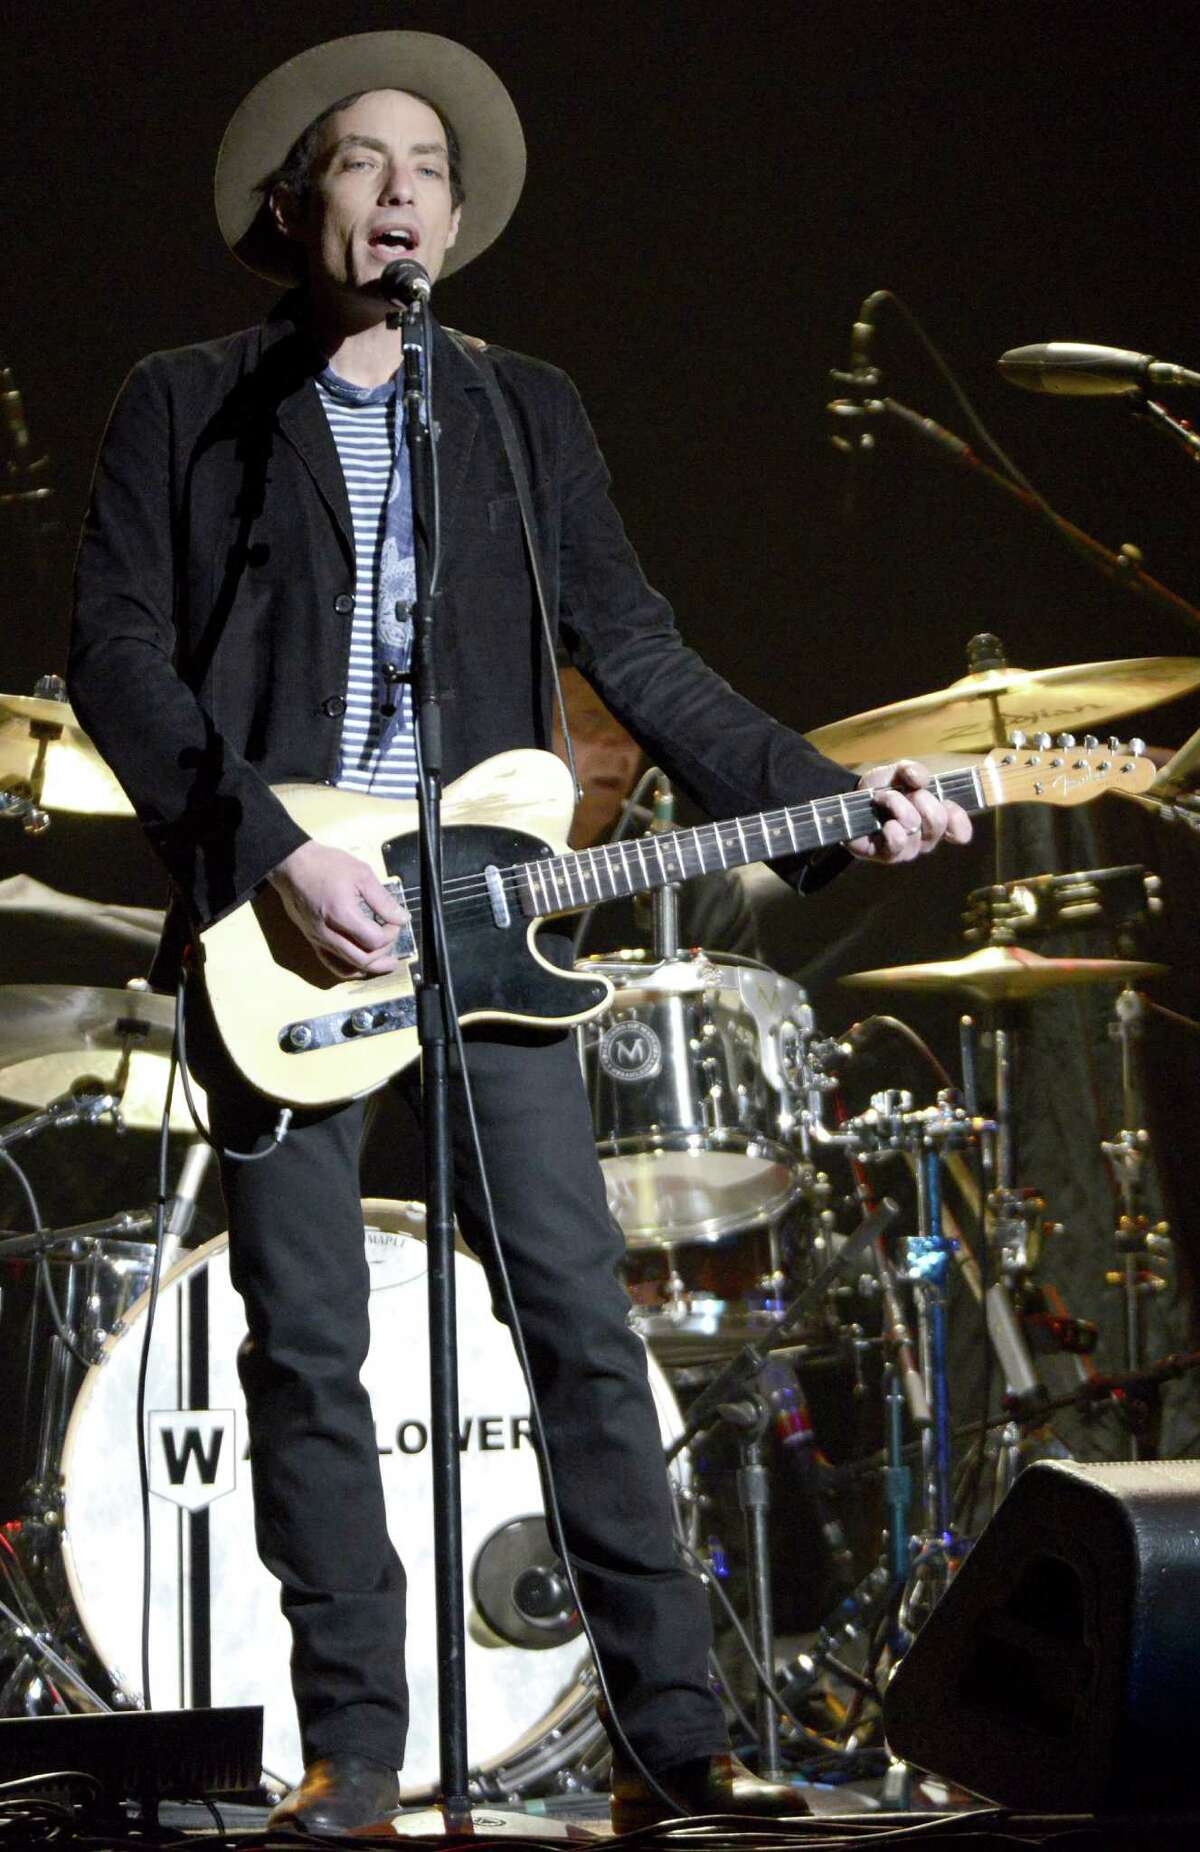 AUSTIN, TX - MARCH 17: Jakob Dylan of The Wallflowers performs in support of the bands' Glad All Over release at the Frank Irwin Center on March 17, 2013 in Austin, Texas. (Photo by Tim Mosenfelder/Getty Images)